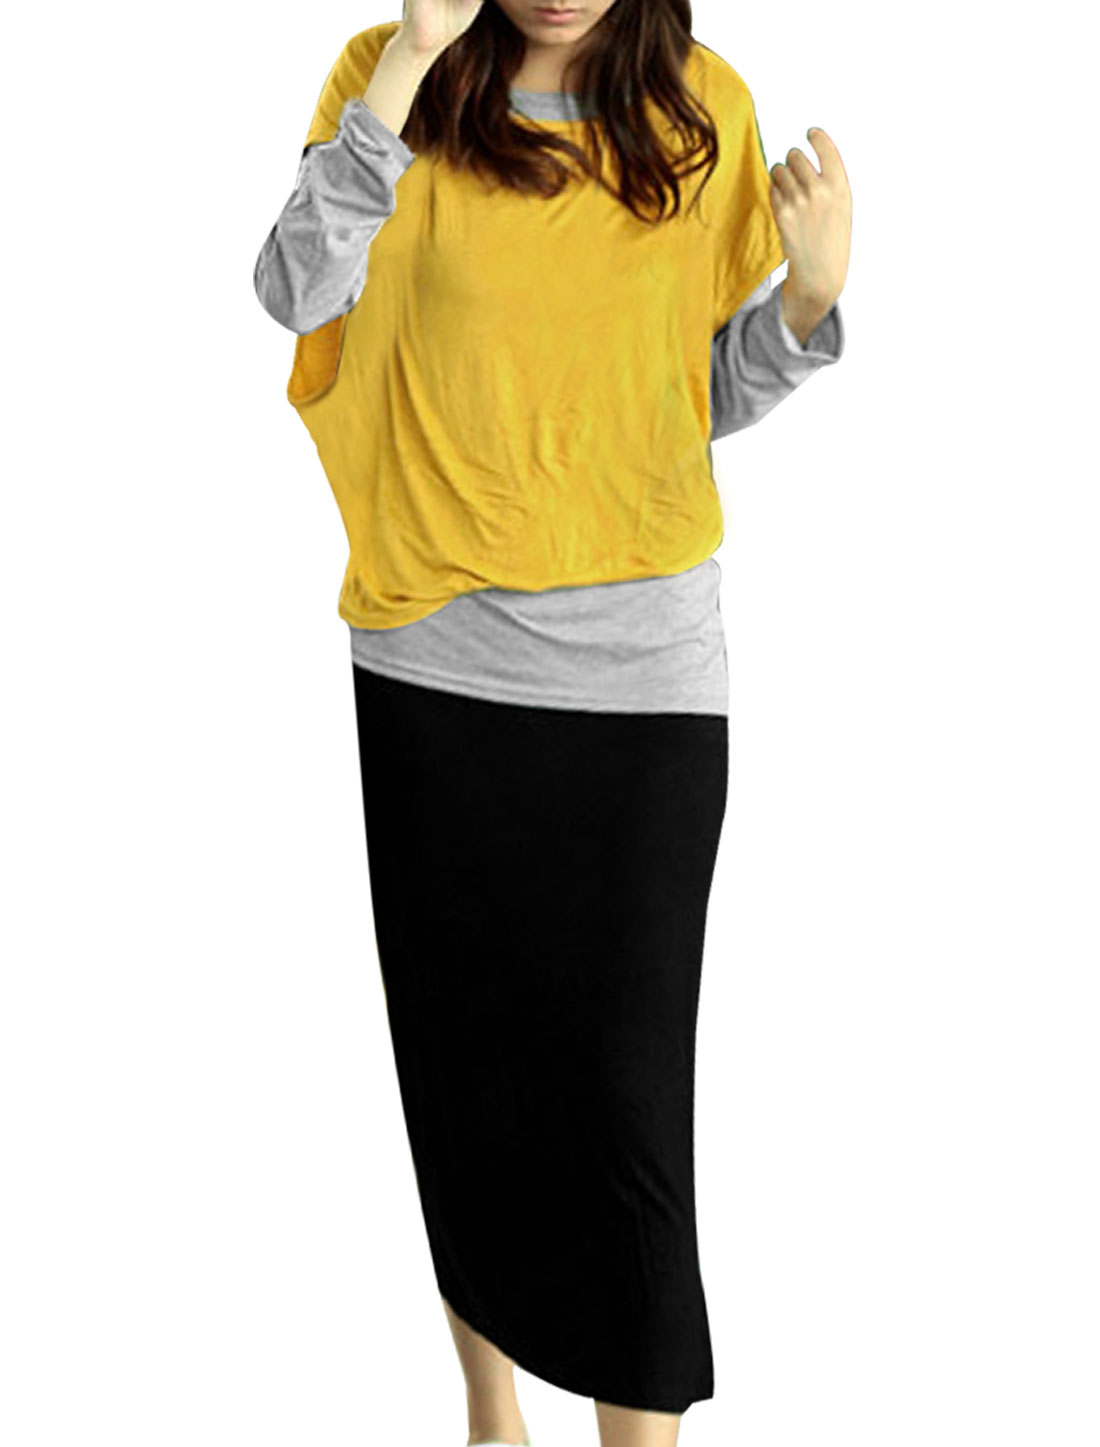 Ladies Long Sleeve Blouse W Batwing Sleeve Smock W A-line Yellow Dress XS